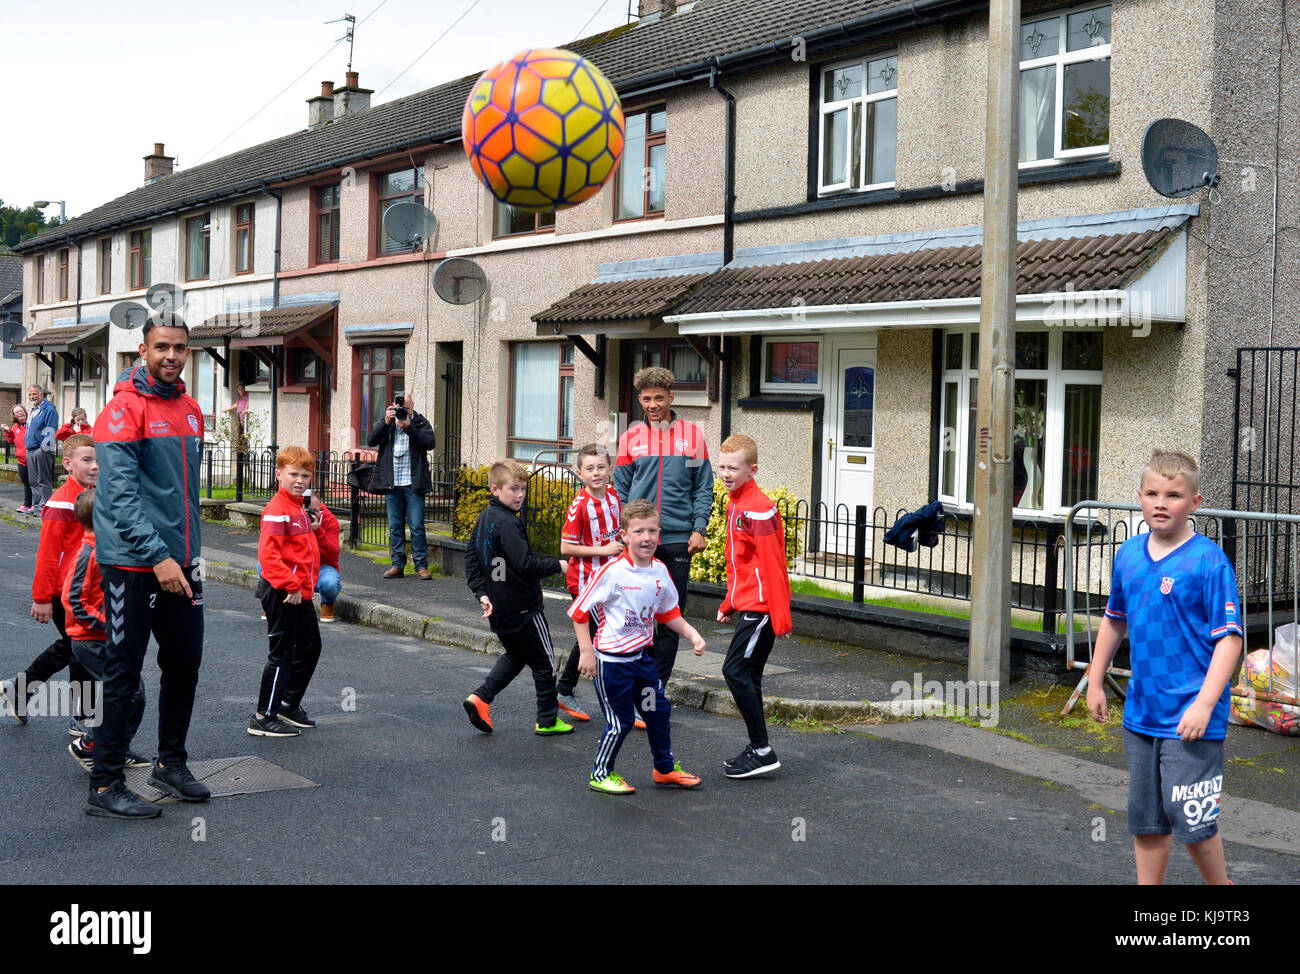 Children Play Football In The Street With Derry City Footballers